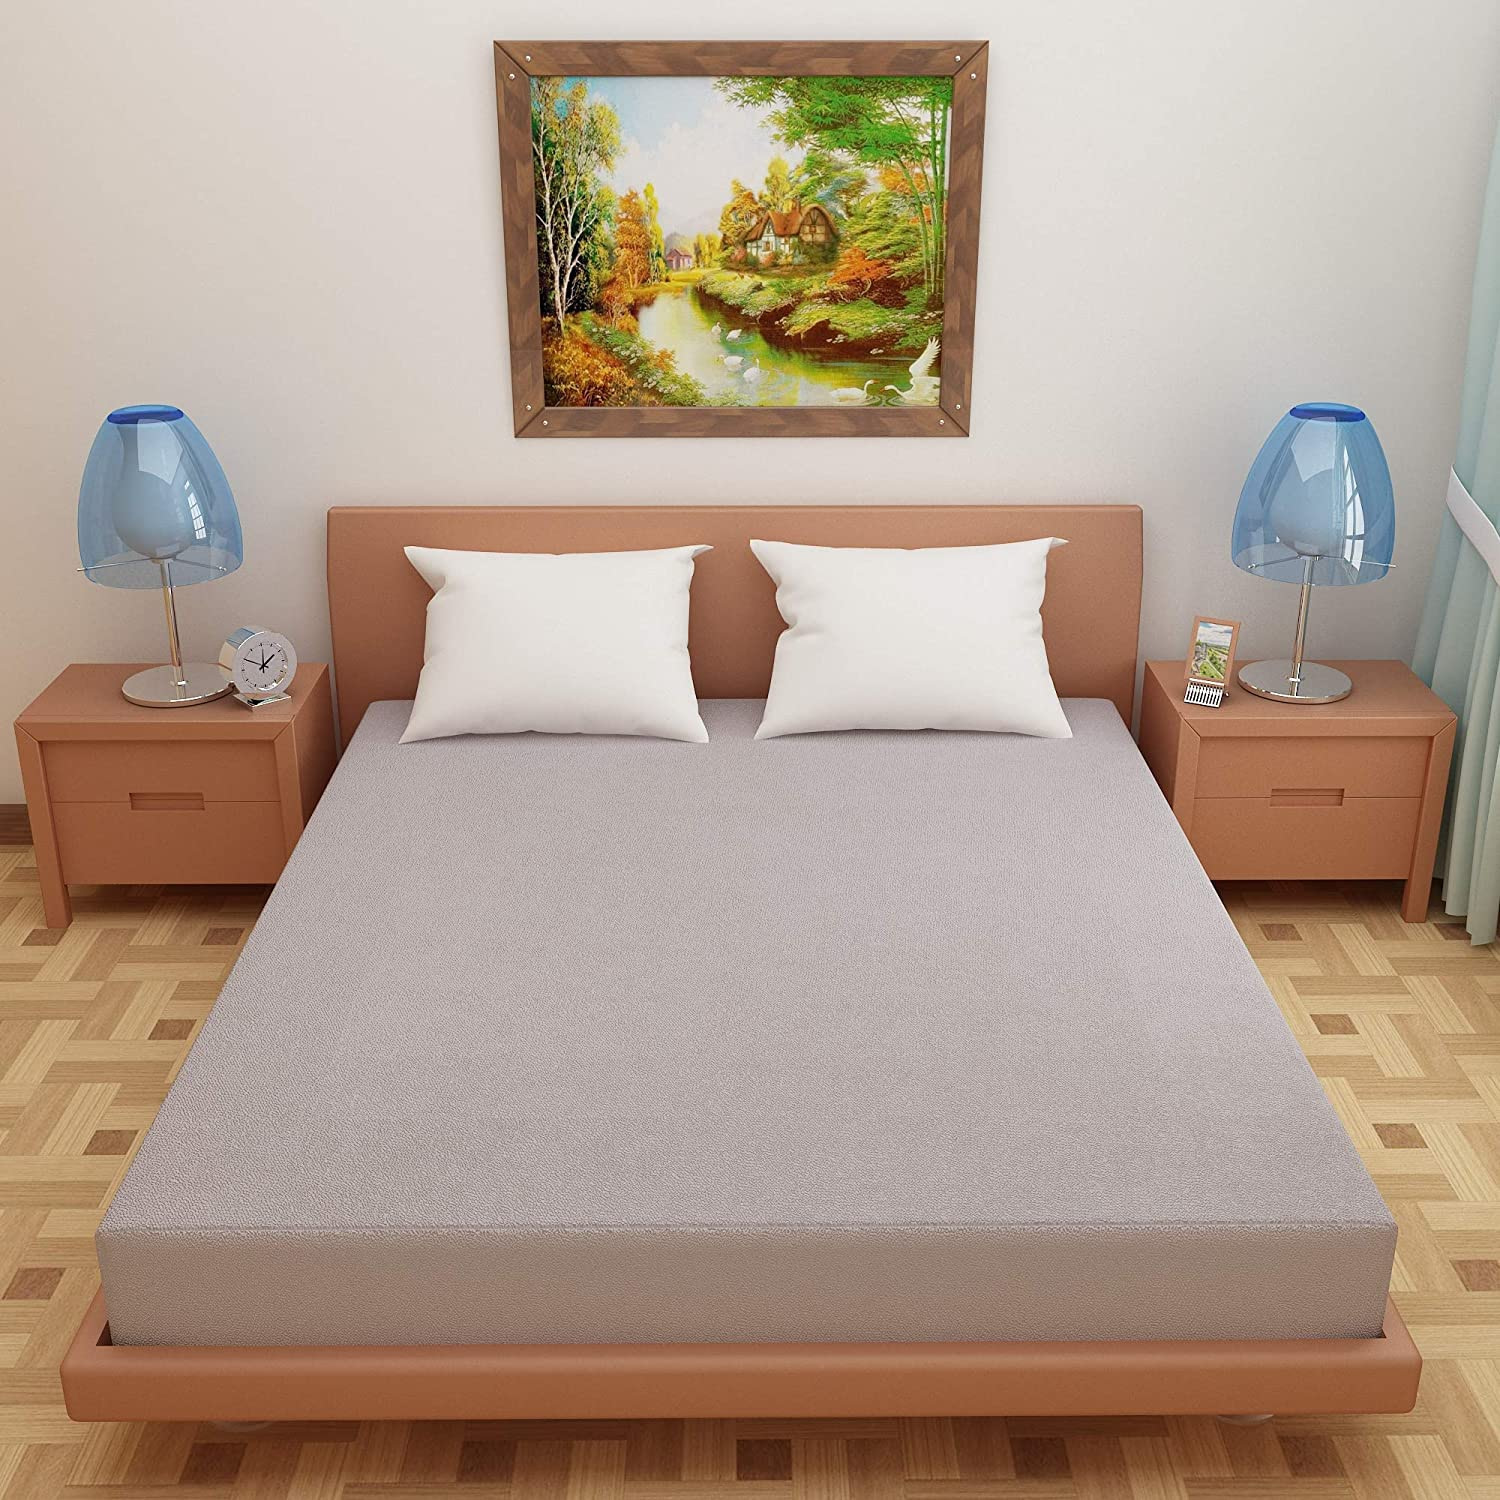 Dream Care Water proof Mattress Protector